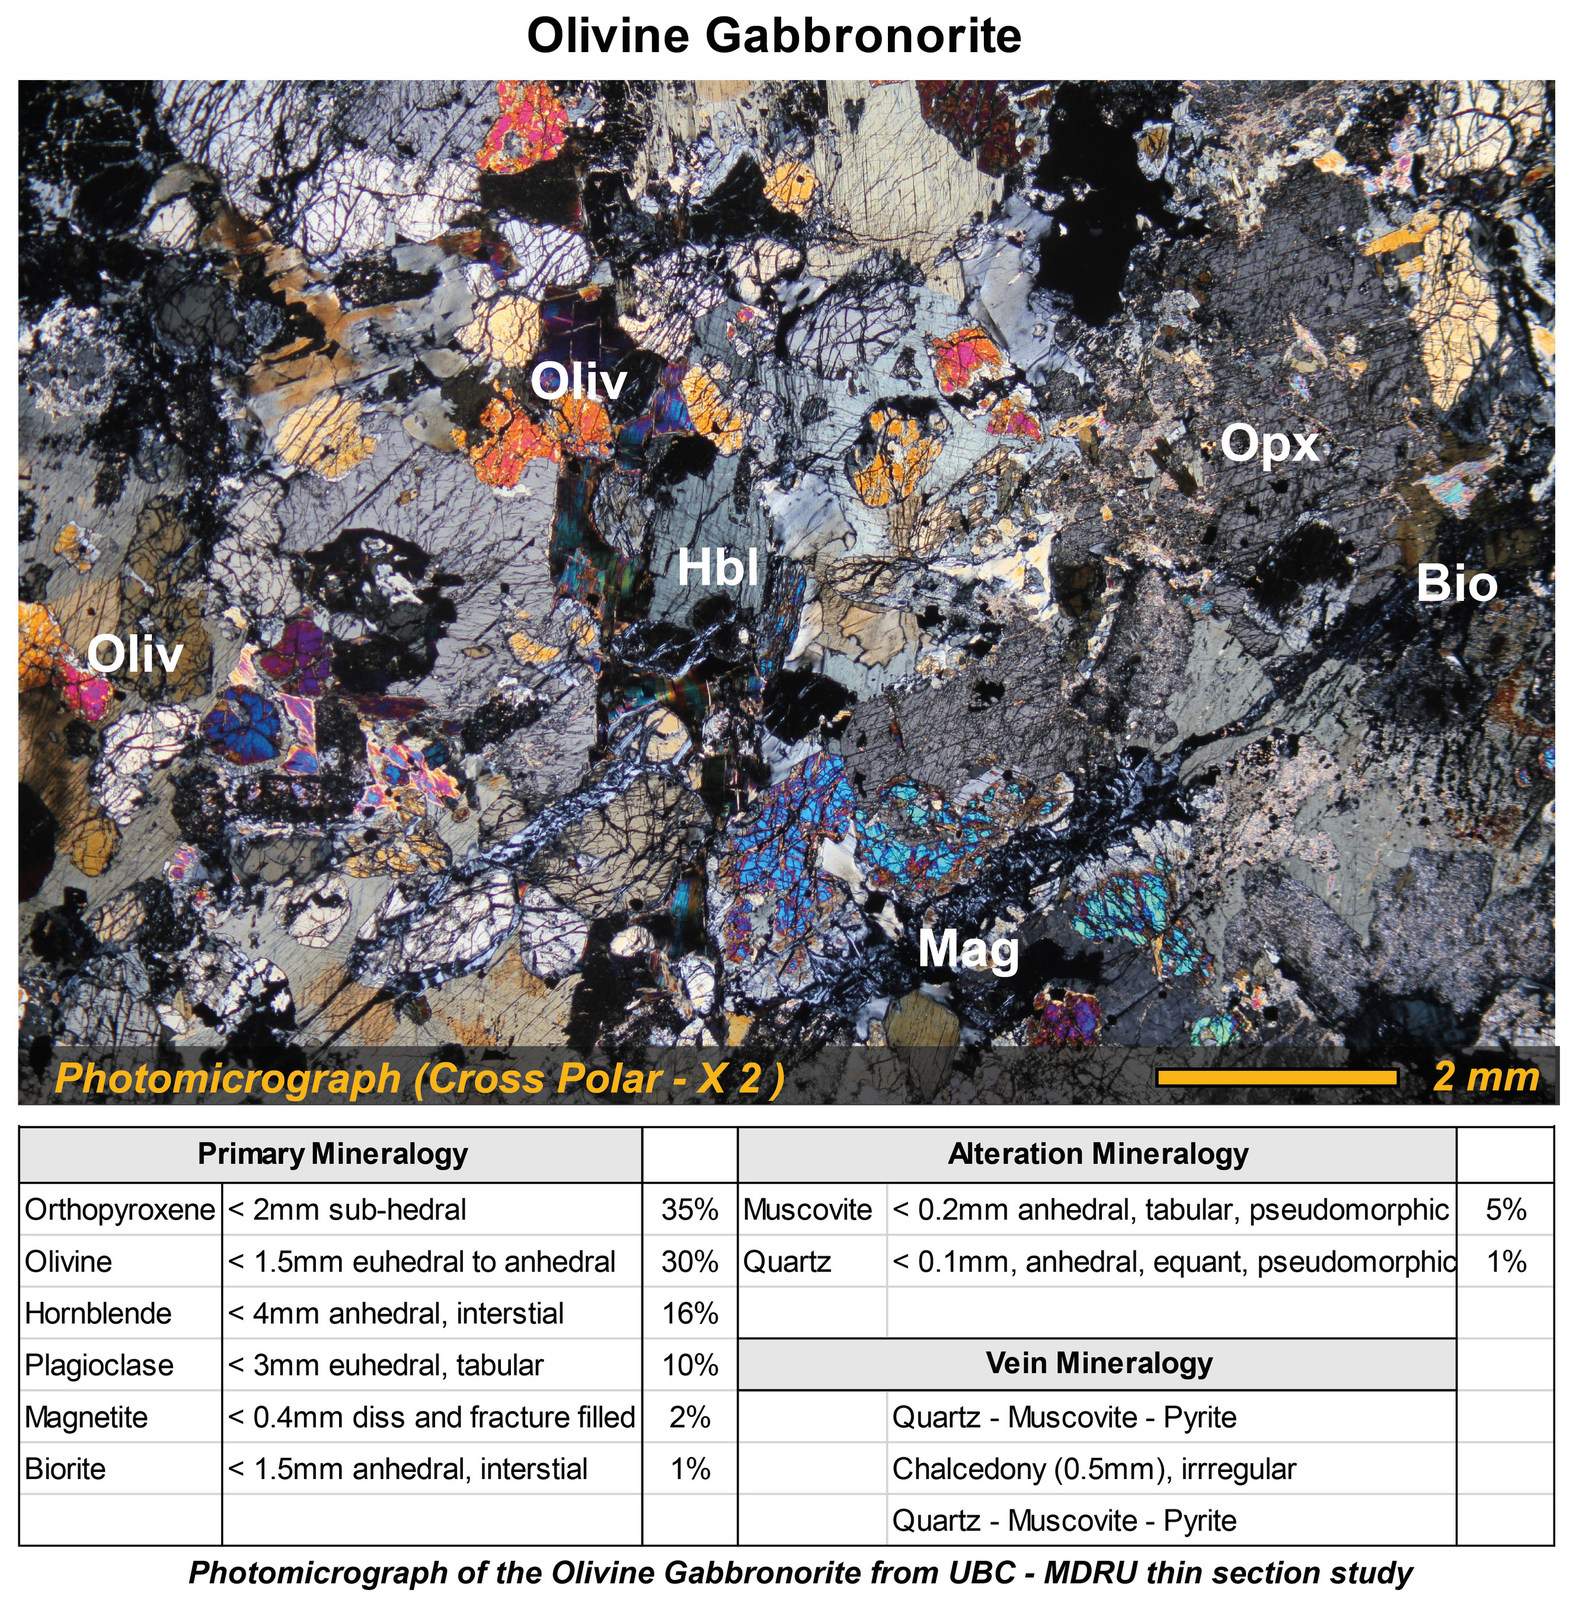 Photomicrograph of the Olivine Gabbronorite from UBC - MDRU thin section study